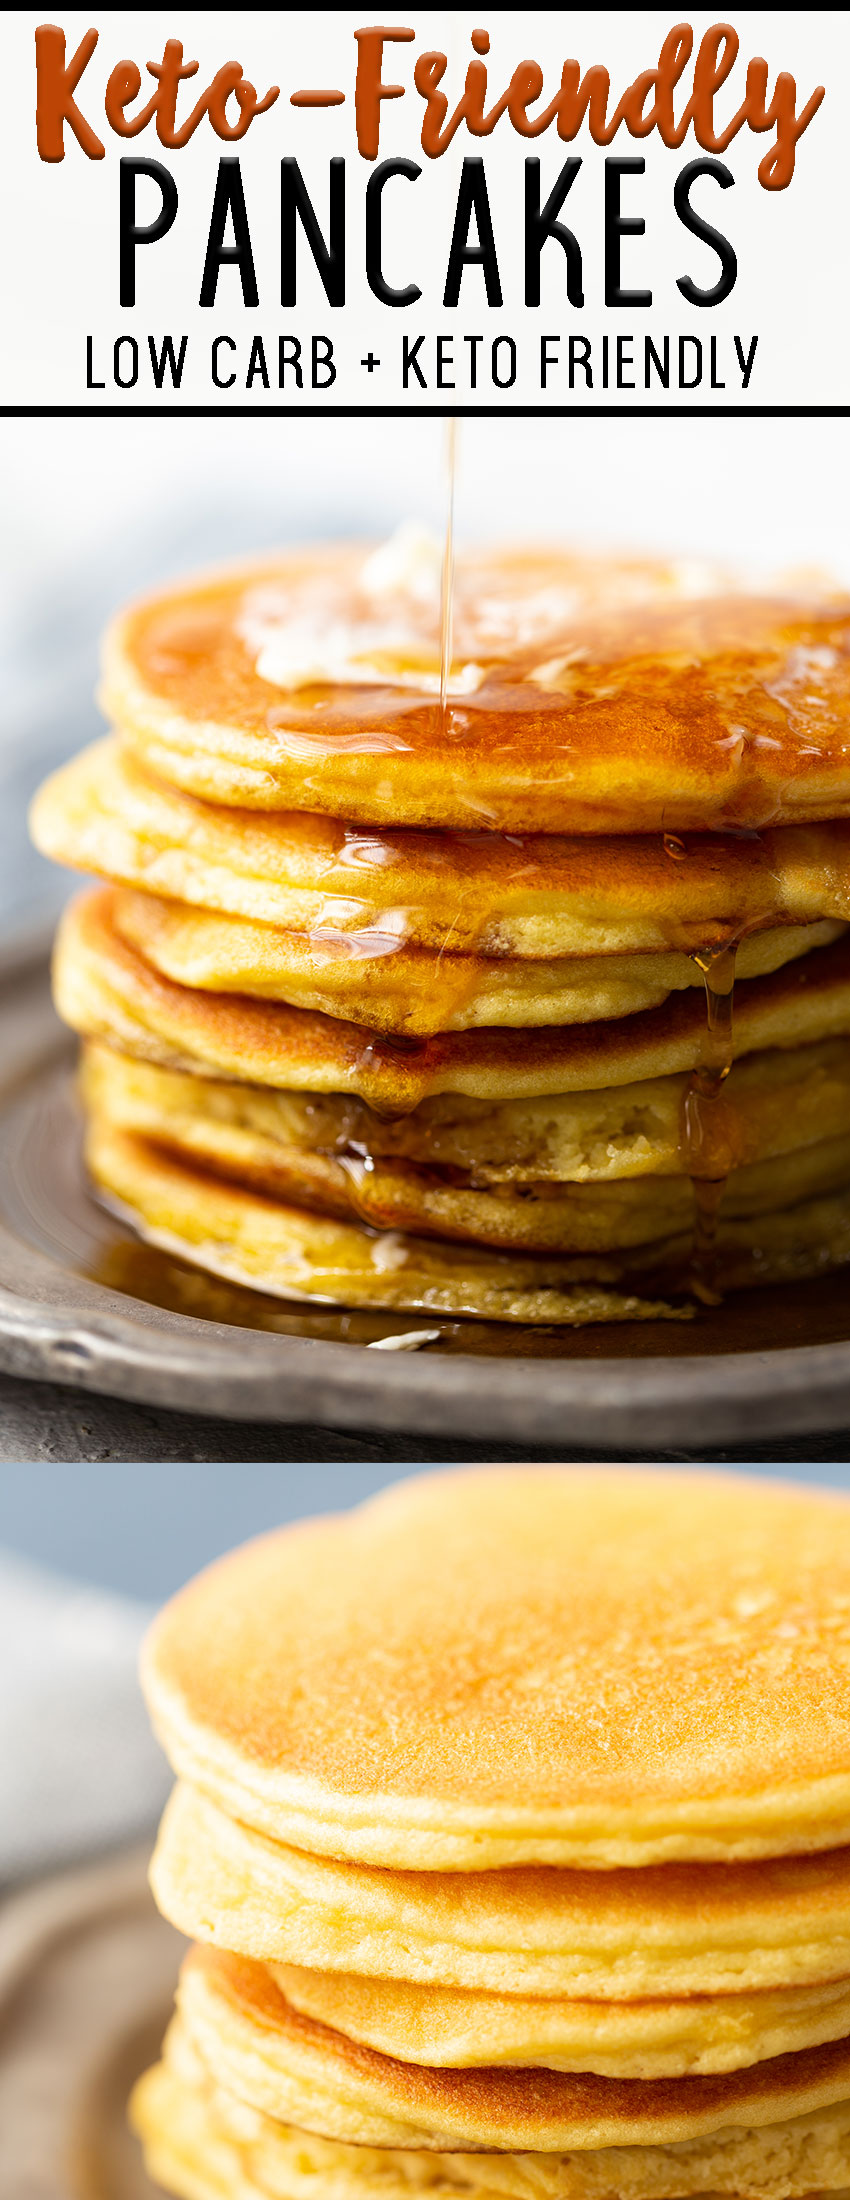 Keto Pancakes for a low carb diet- These amazing pancakes make eating low carb at breakfast so easy.